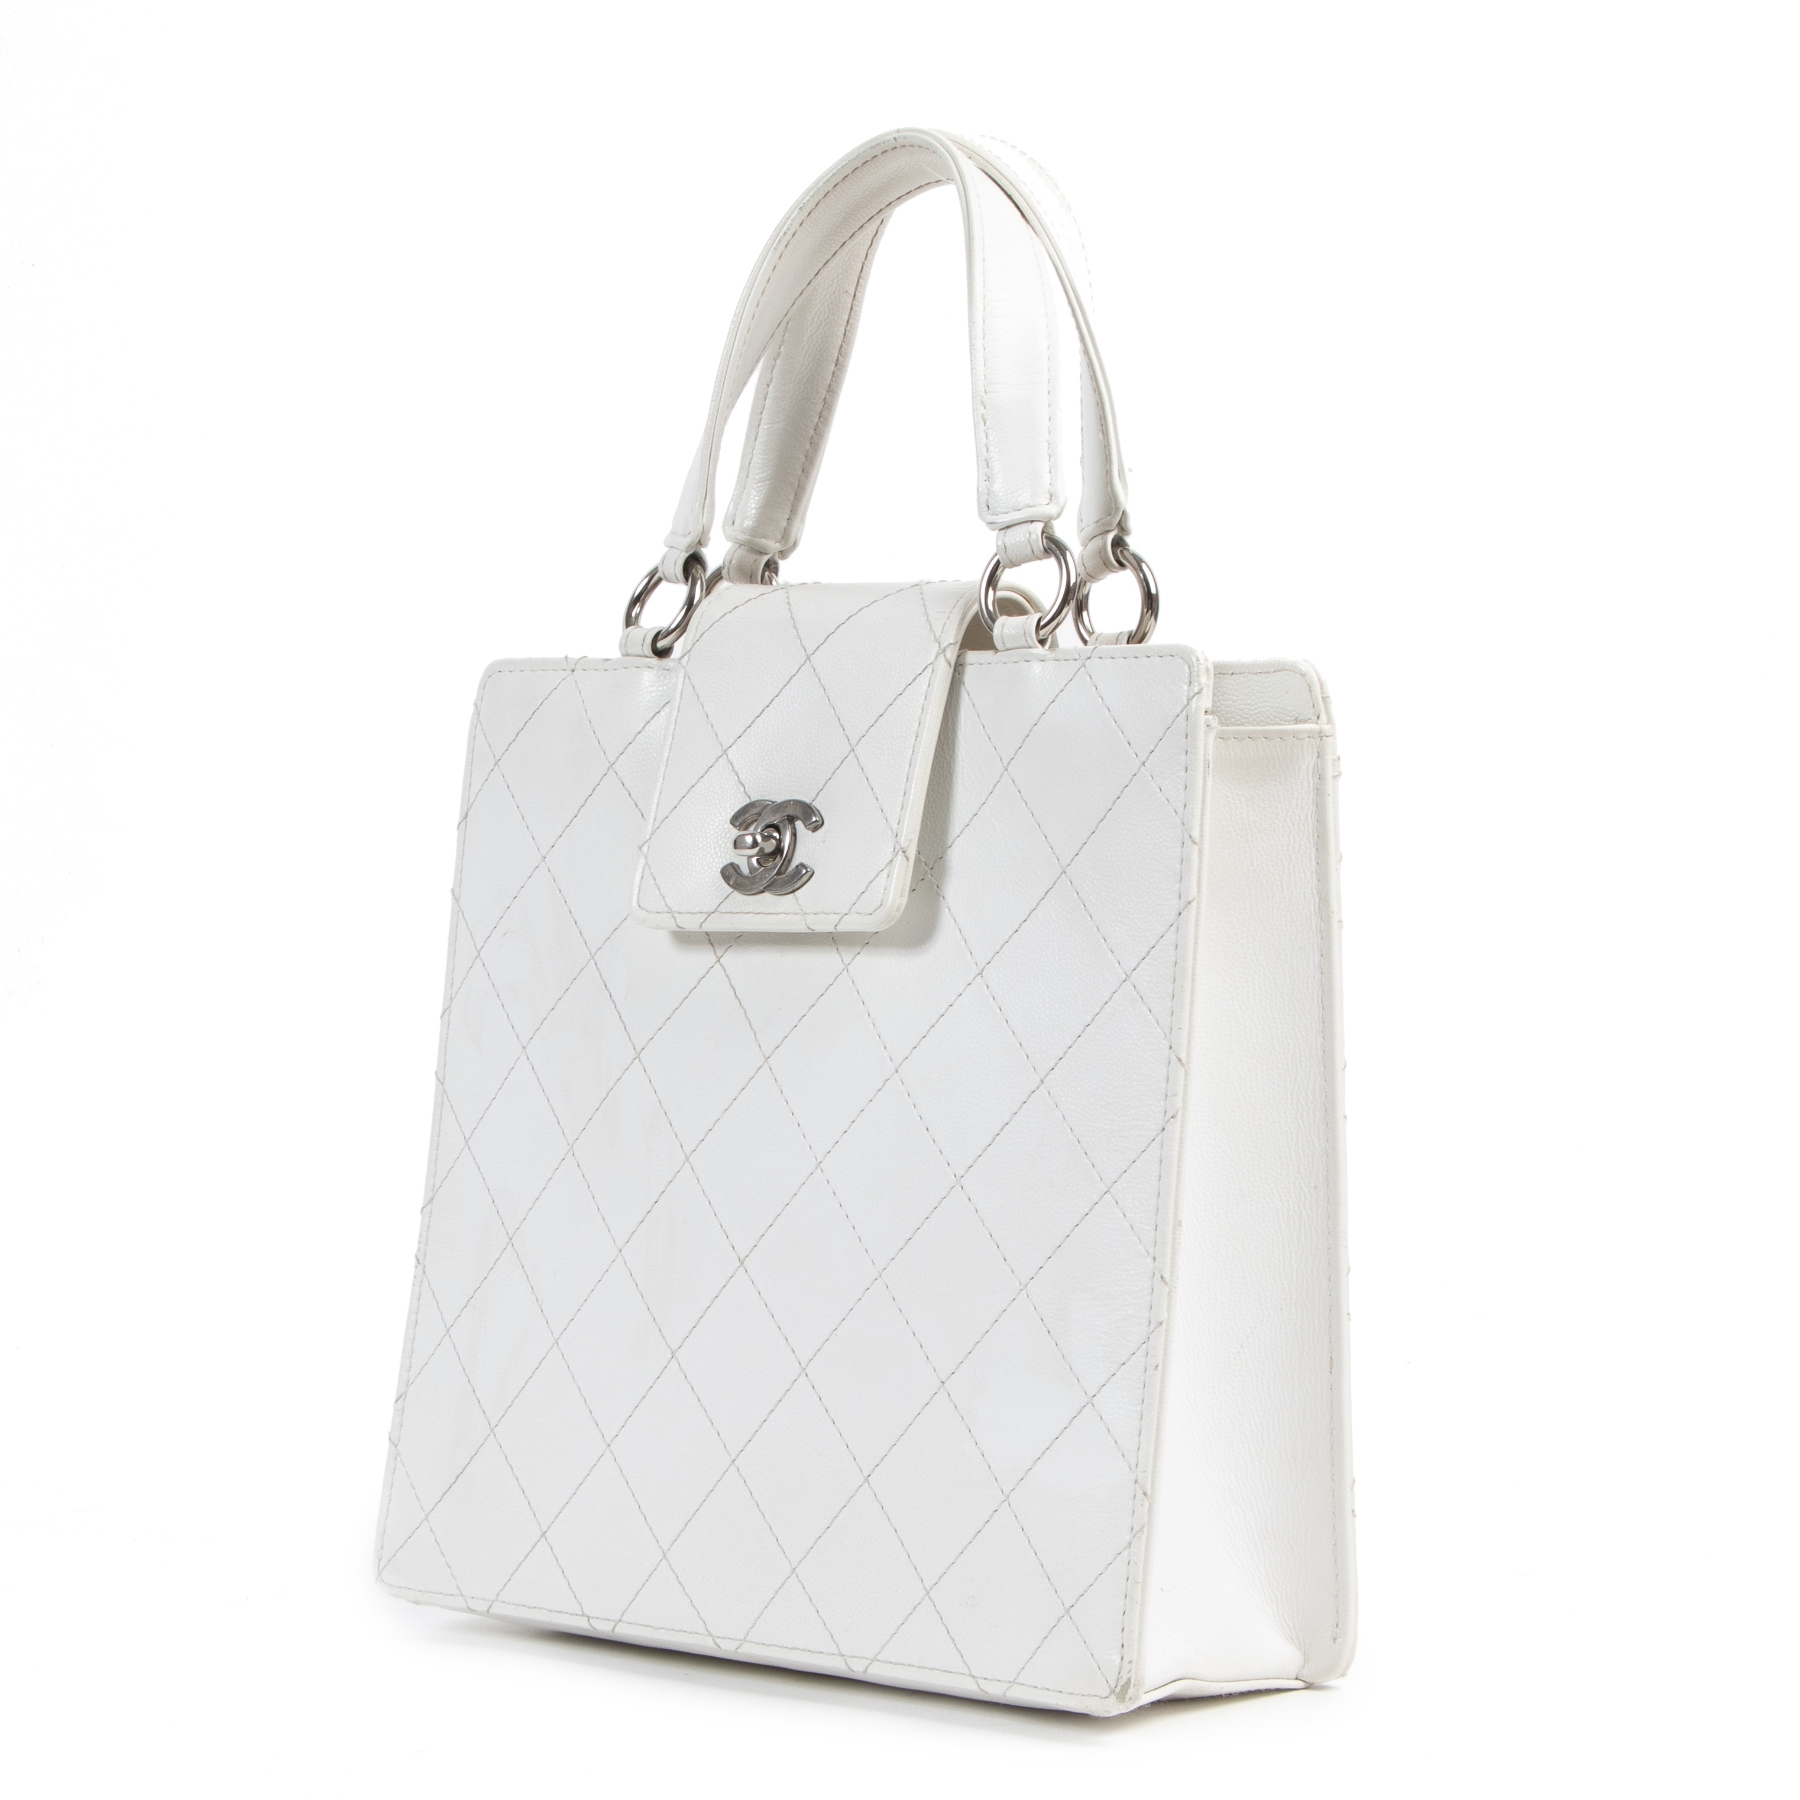 Chanel White Quilted Leather Bag